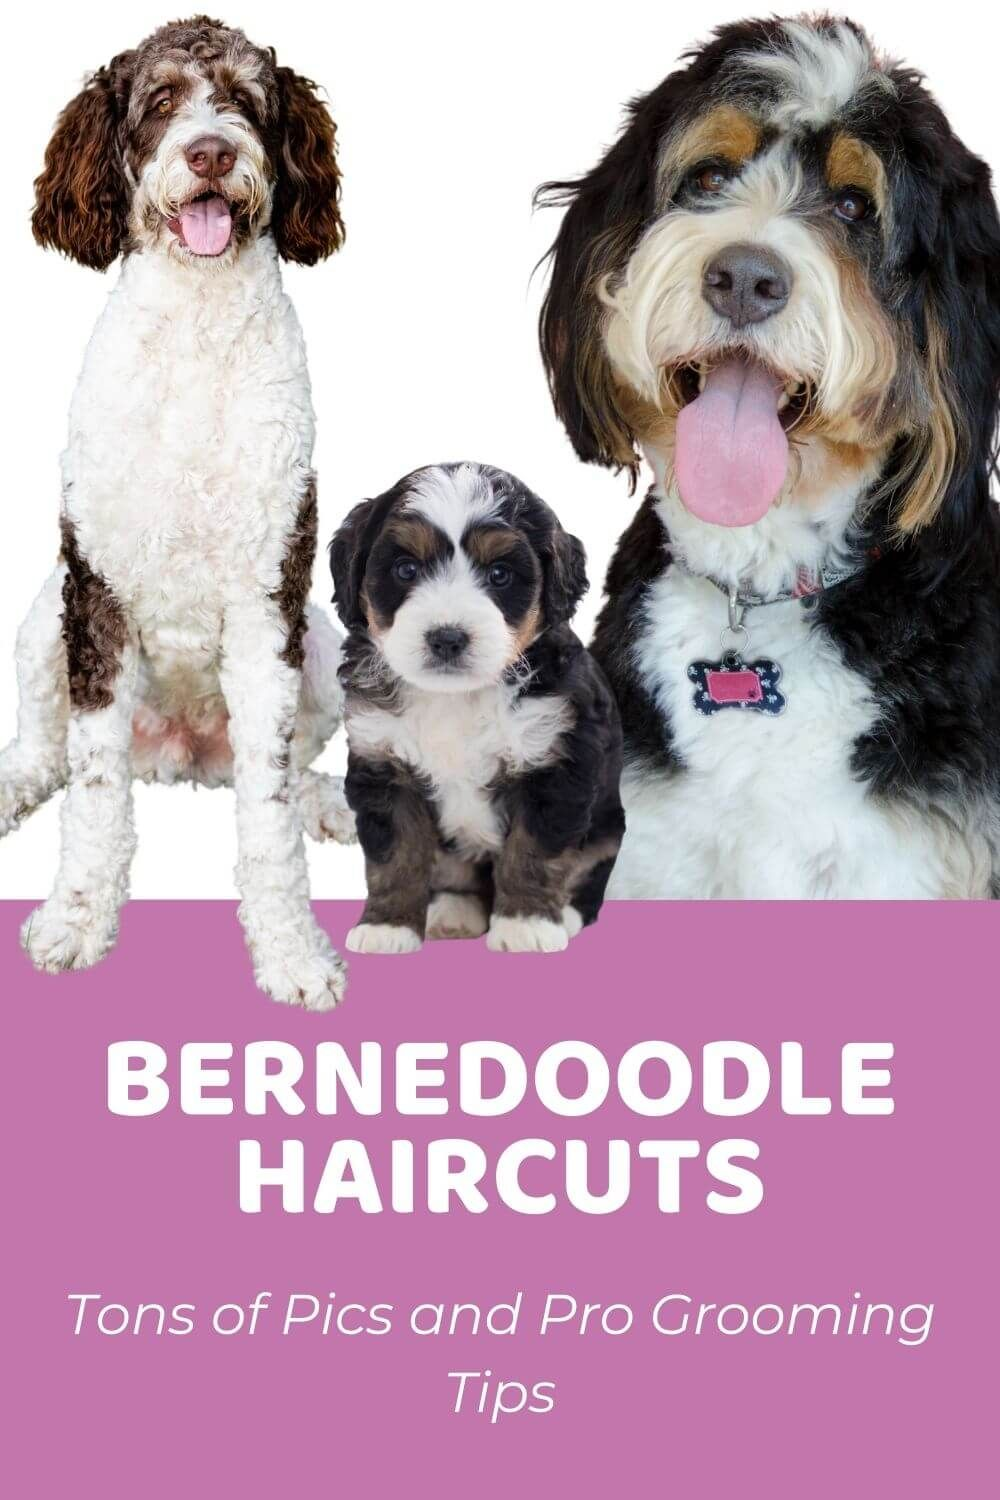 Bernedoodle Haircuts Tons Of Pics And Pro Grooming Tips In 2021 Bernedoodle Puppy Bernedoodle Girl And Dog